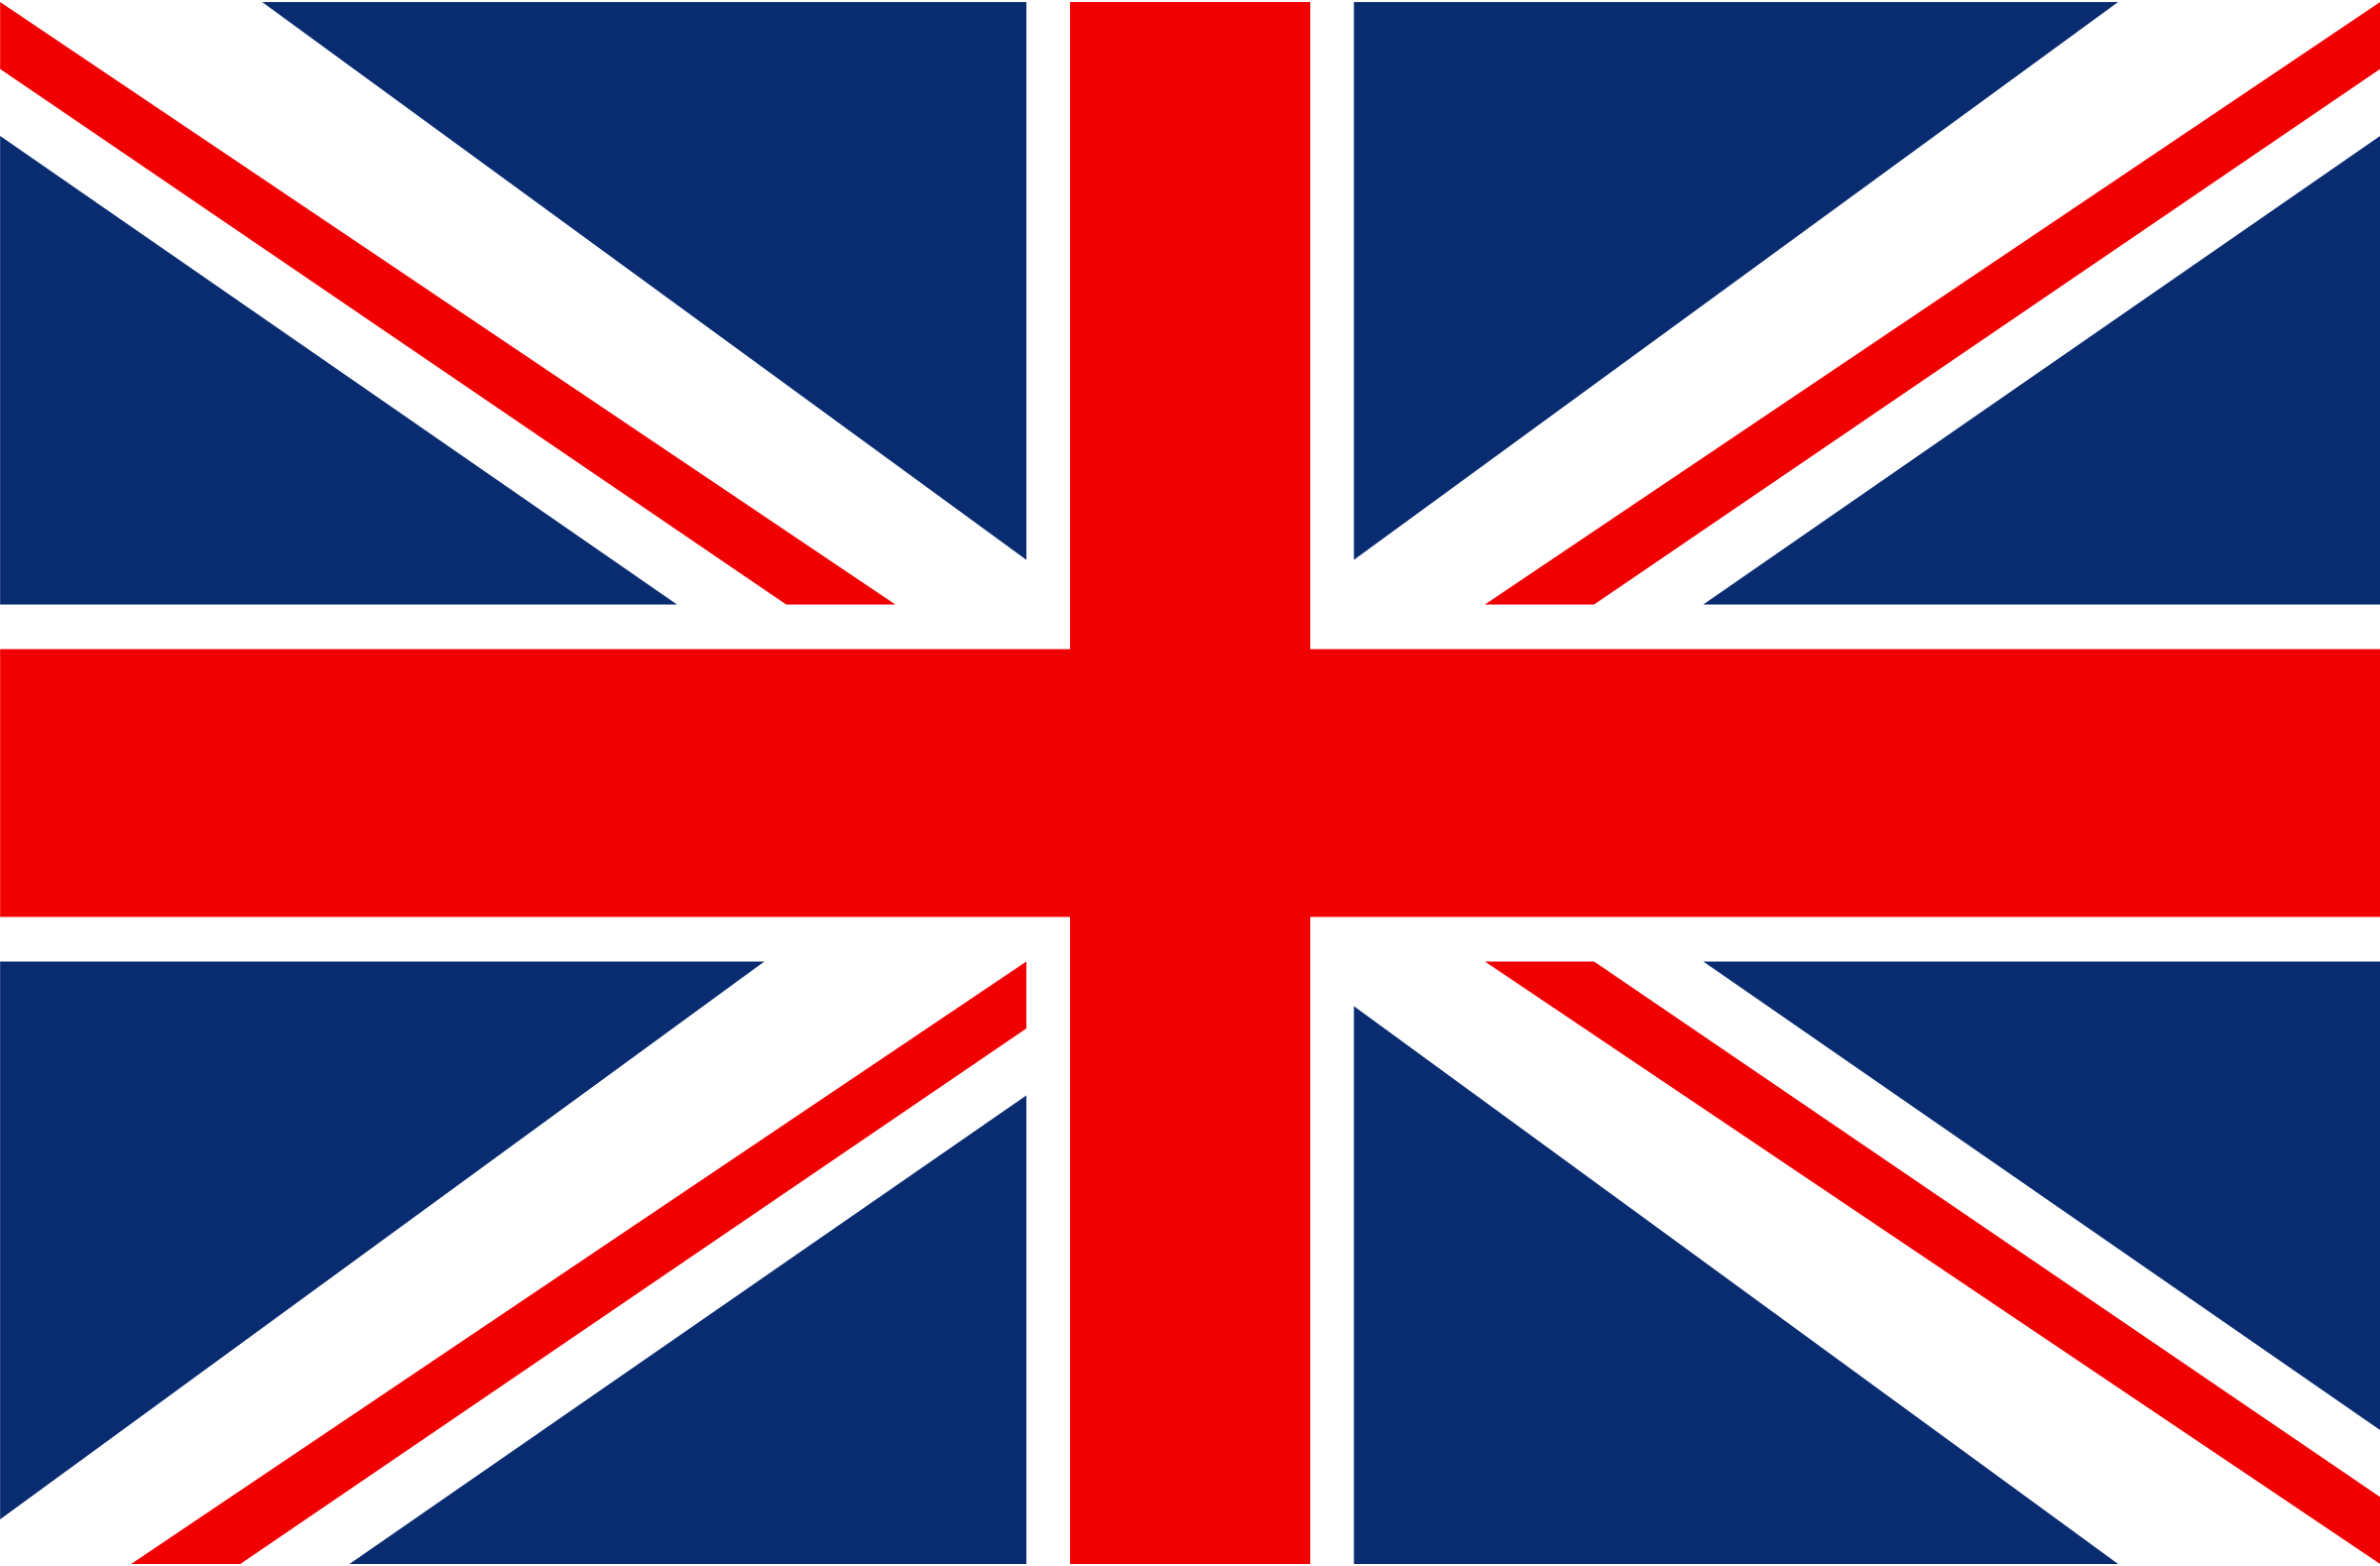 The Union Jack Also Known As The Union Flag Is The